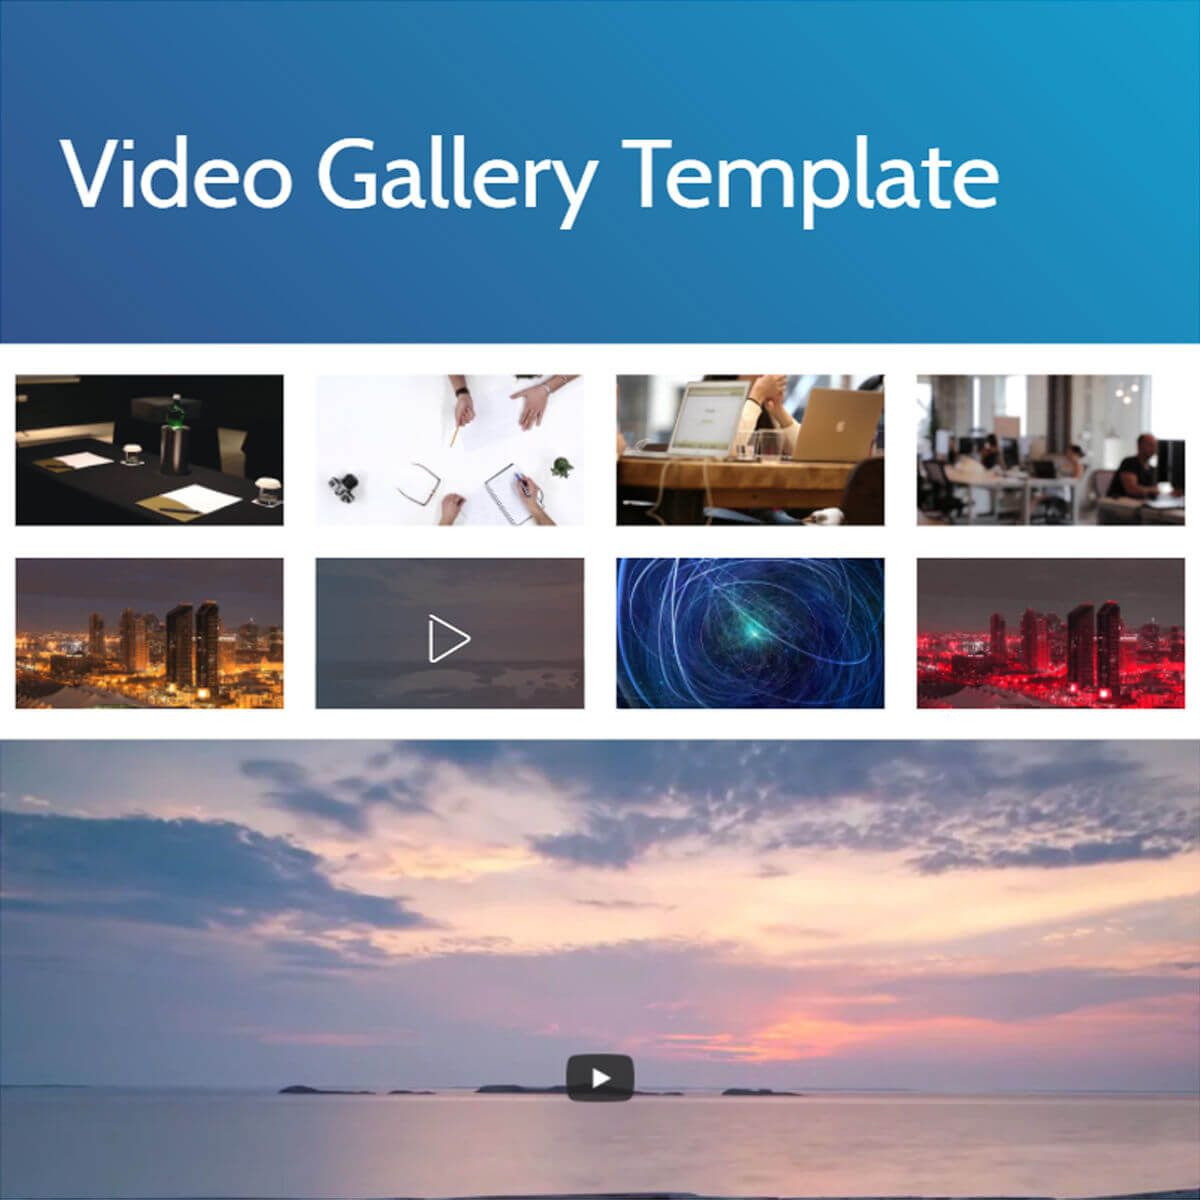 Html5 Bootstrap Video Gallery Template Free Download Templates Gallery Photo Galleries